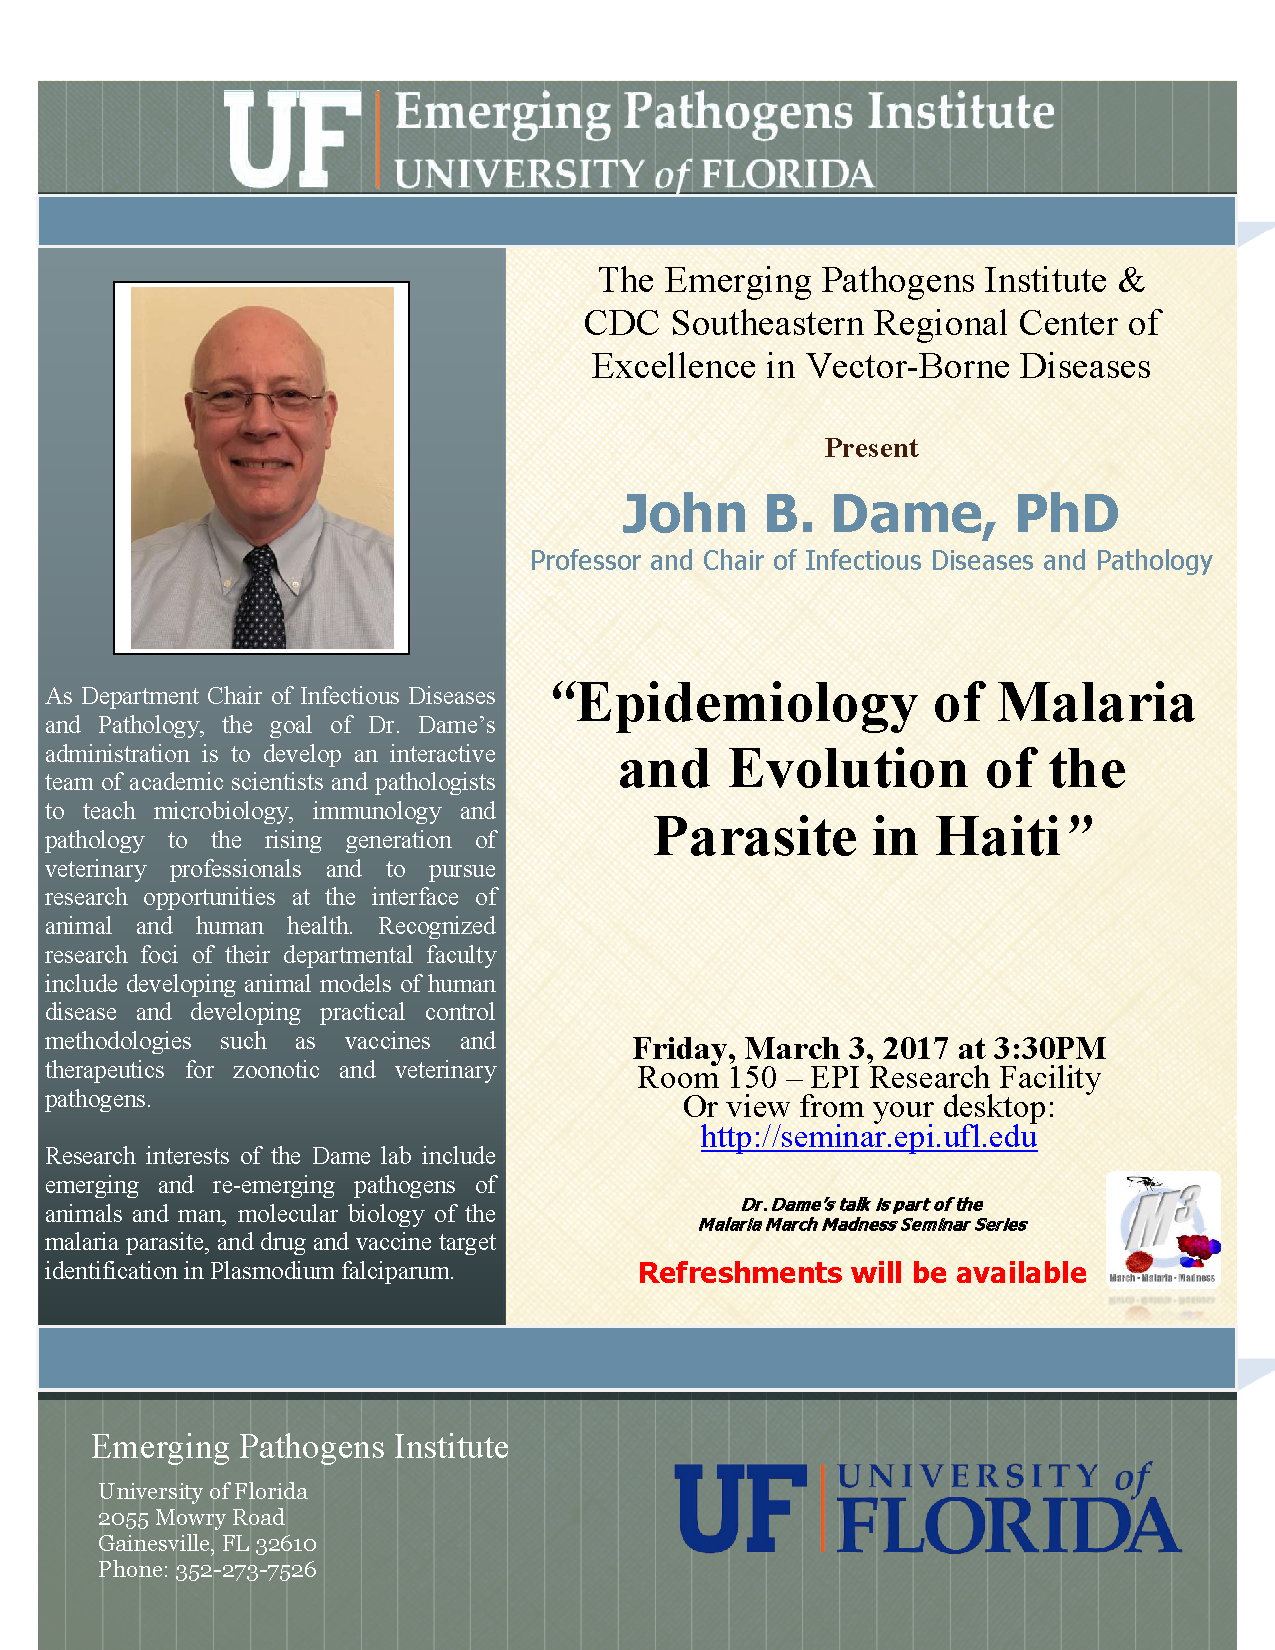 Epidemiology of Malaria and Evolution of the Parasite in Haiti""